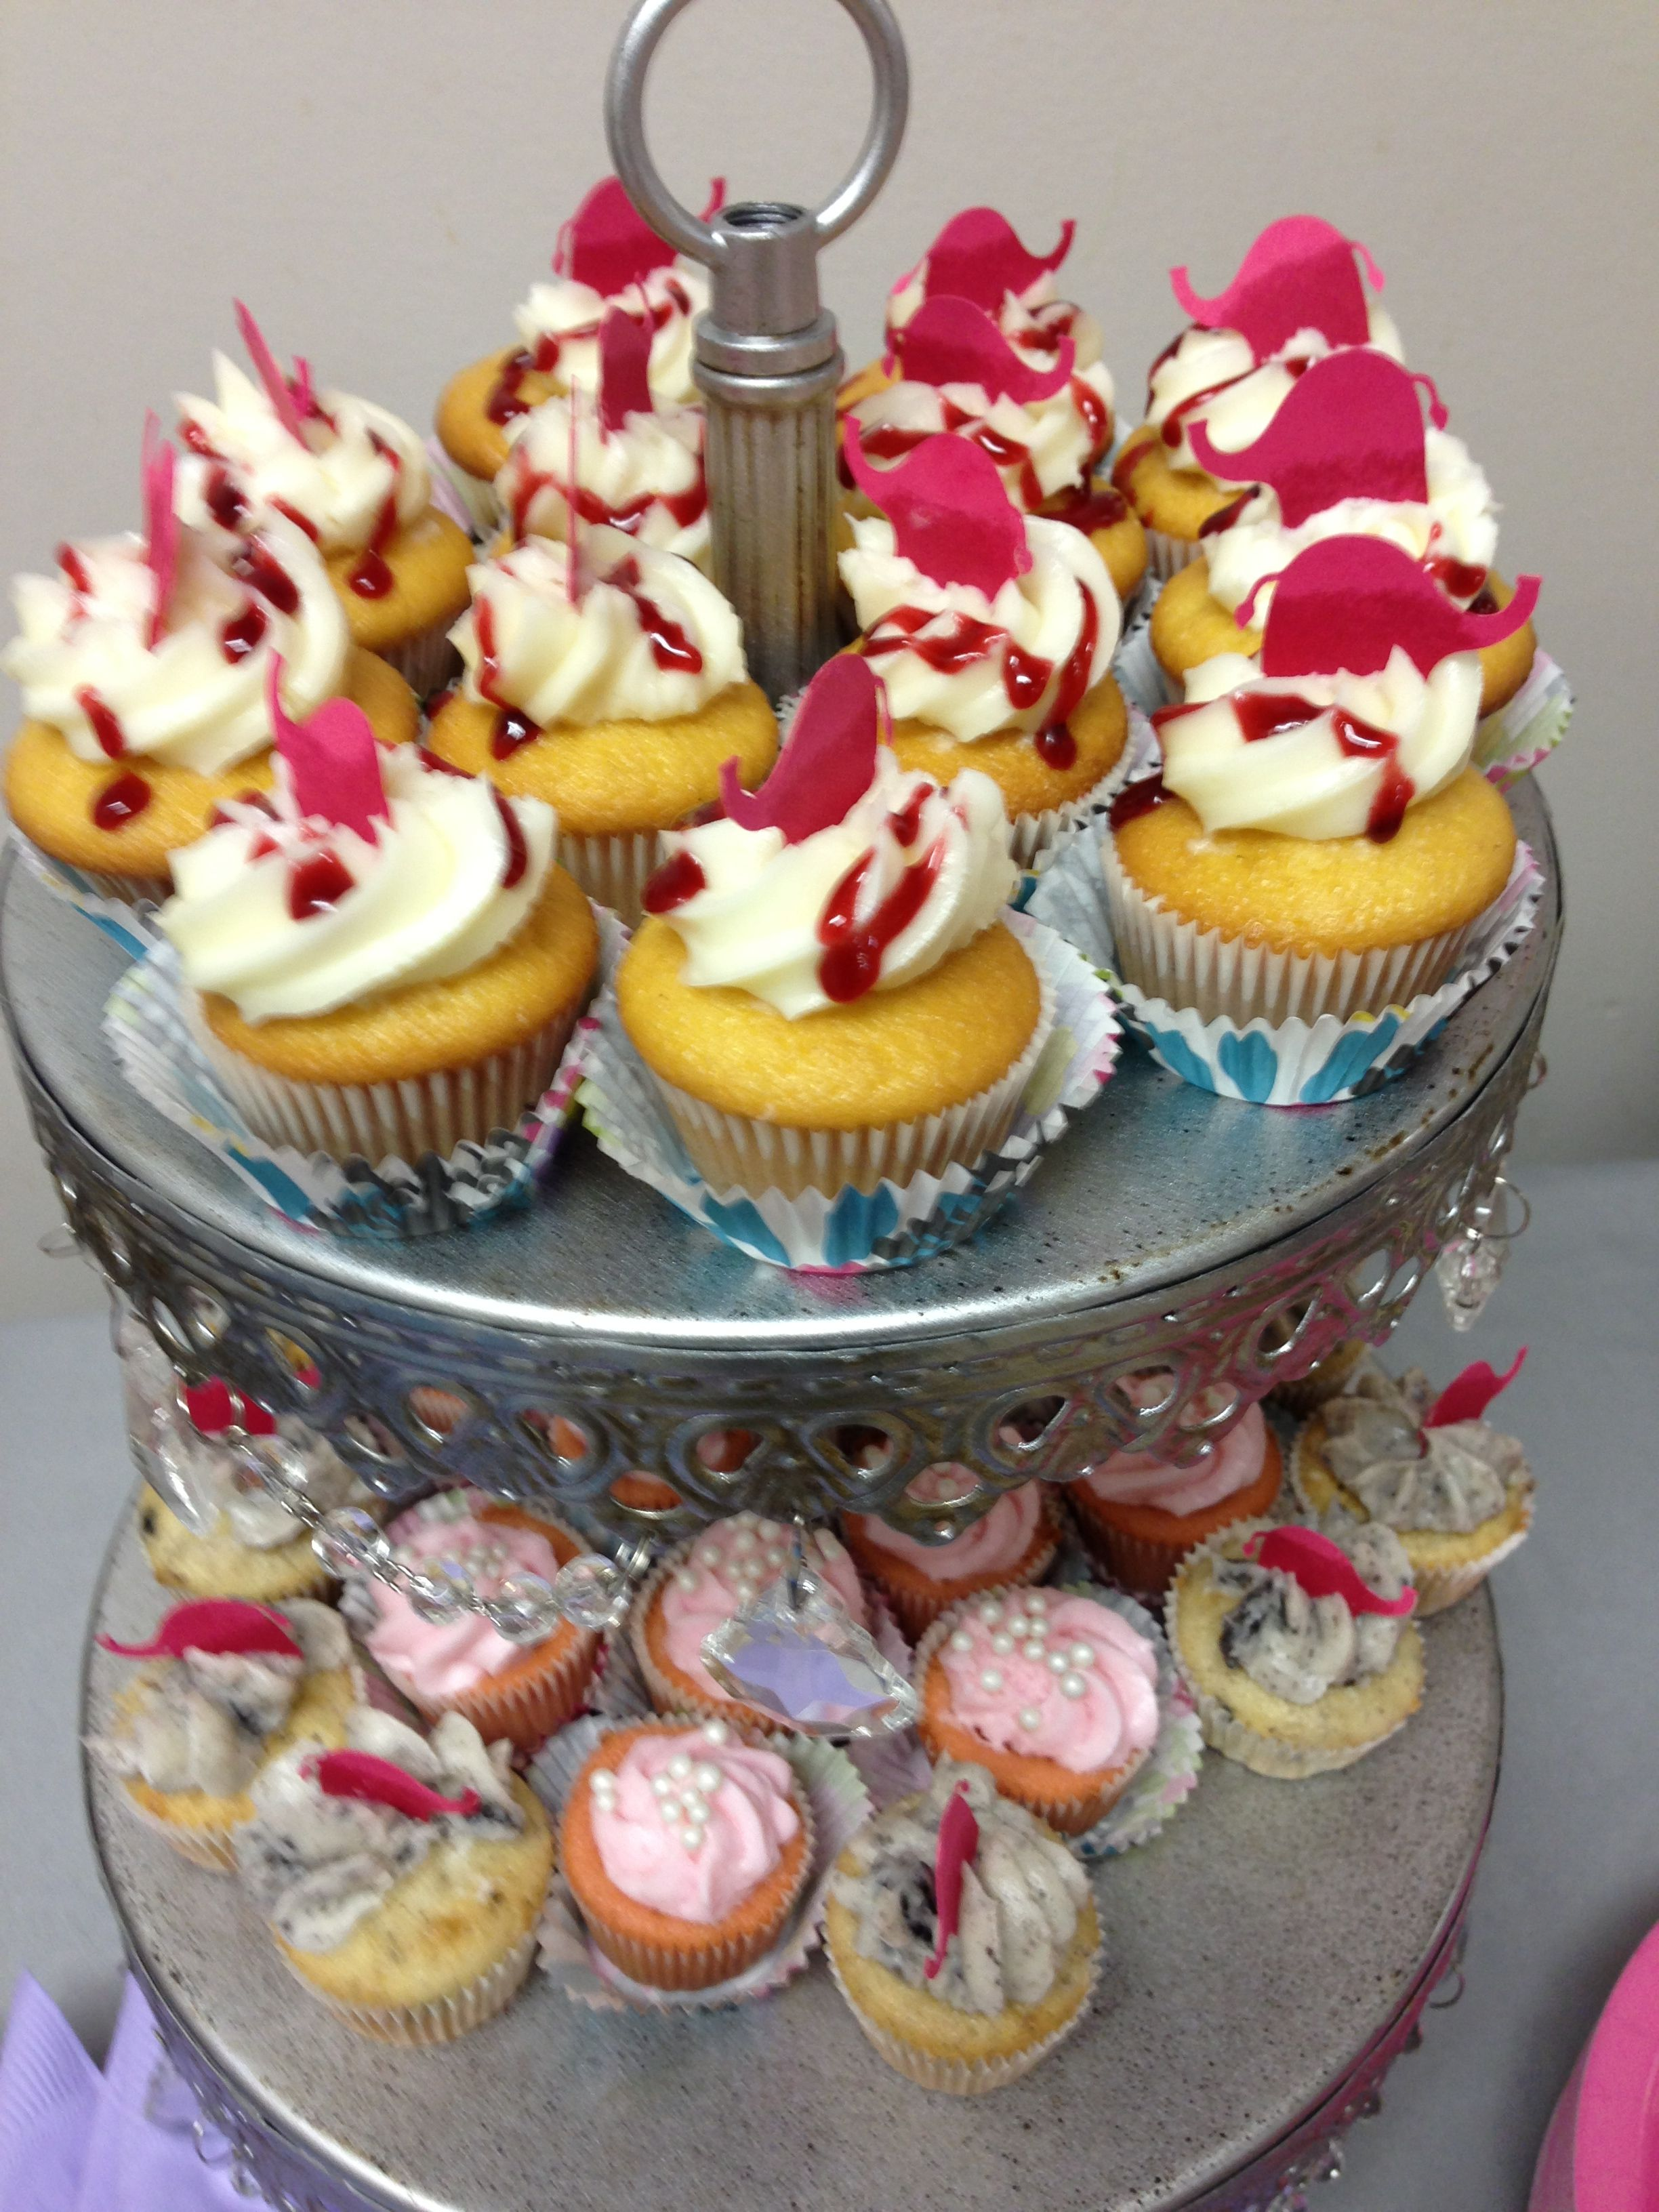 Assorted Mini Cupcakes with baby pink elephants